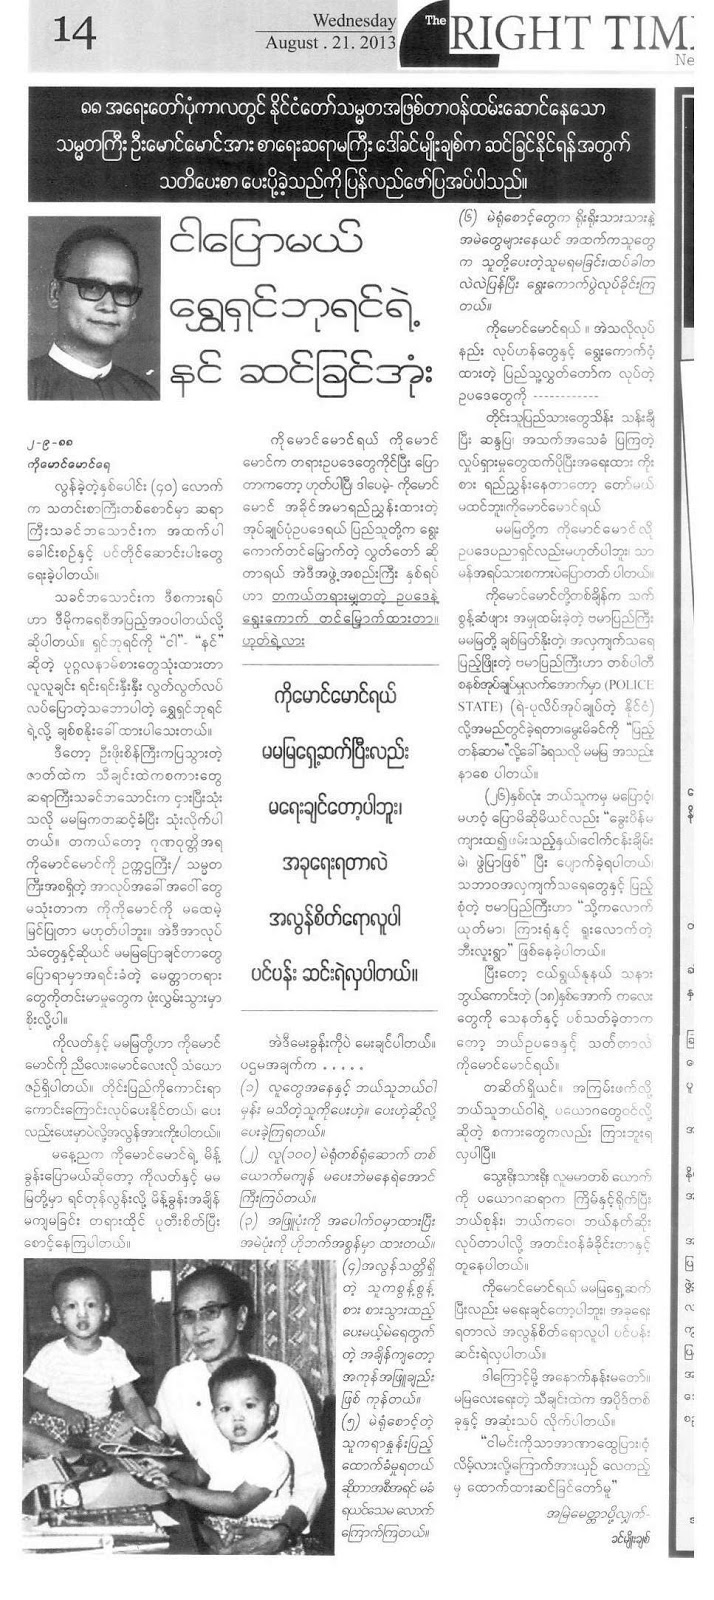 Khin Myo Chit – Letter to Dr. Maung Maung (2th Sept 1988)